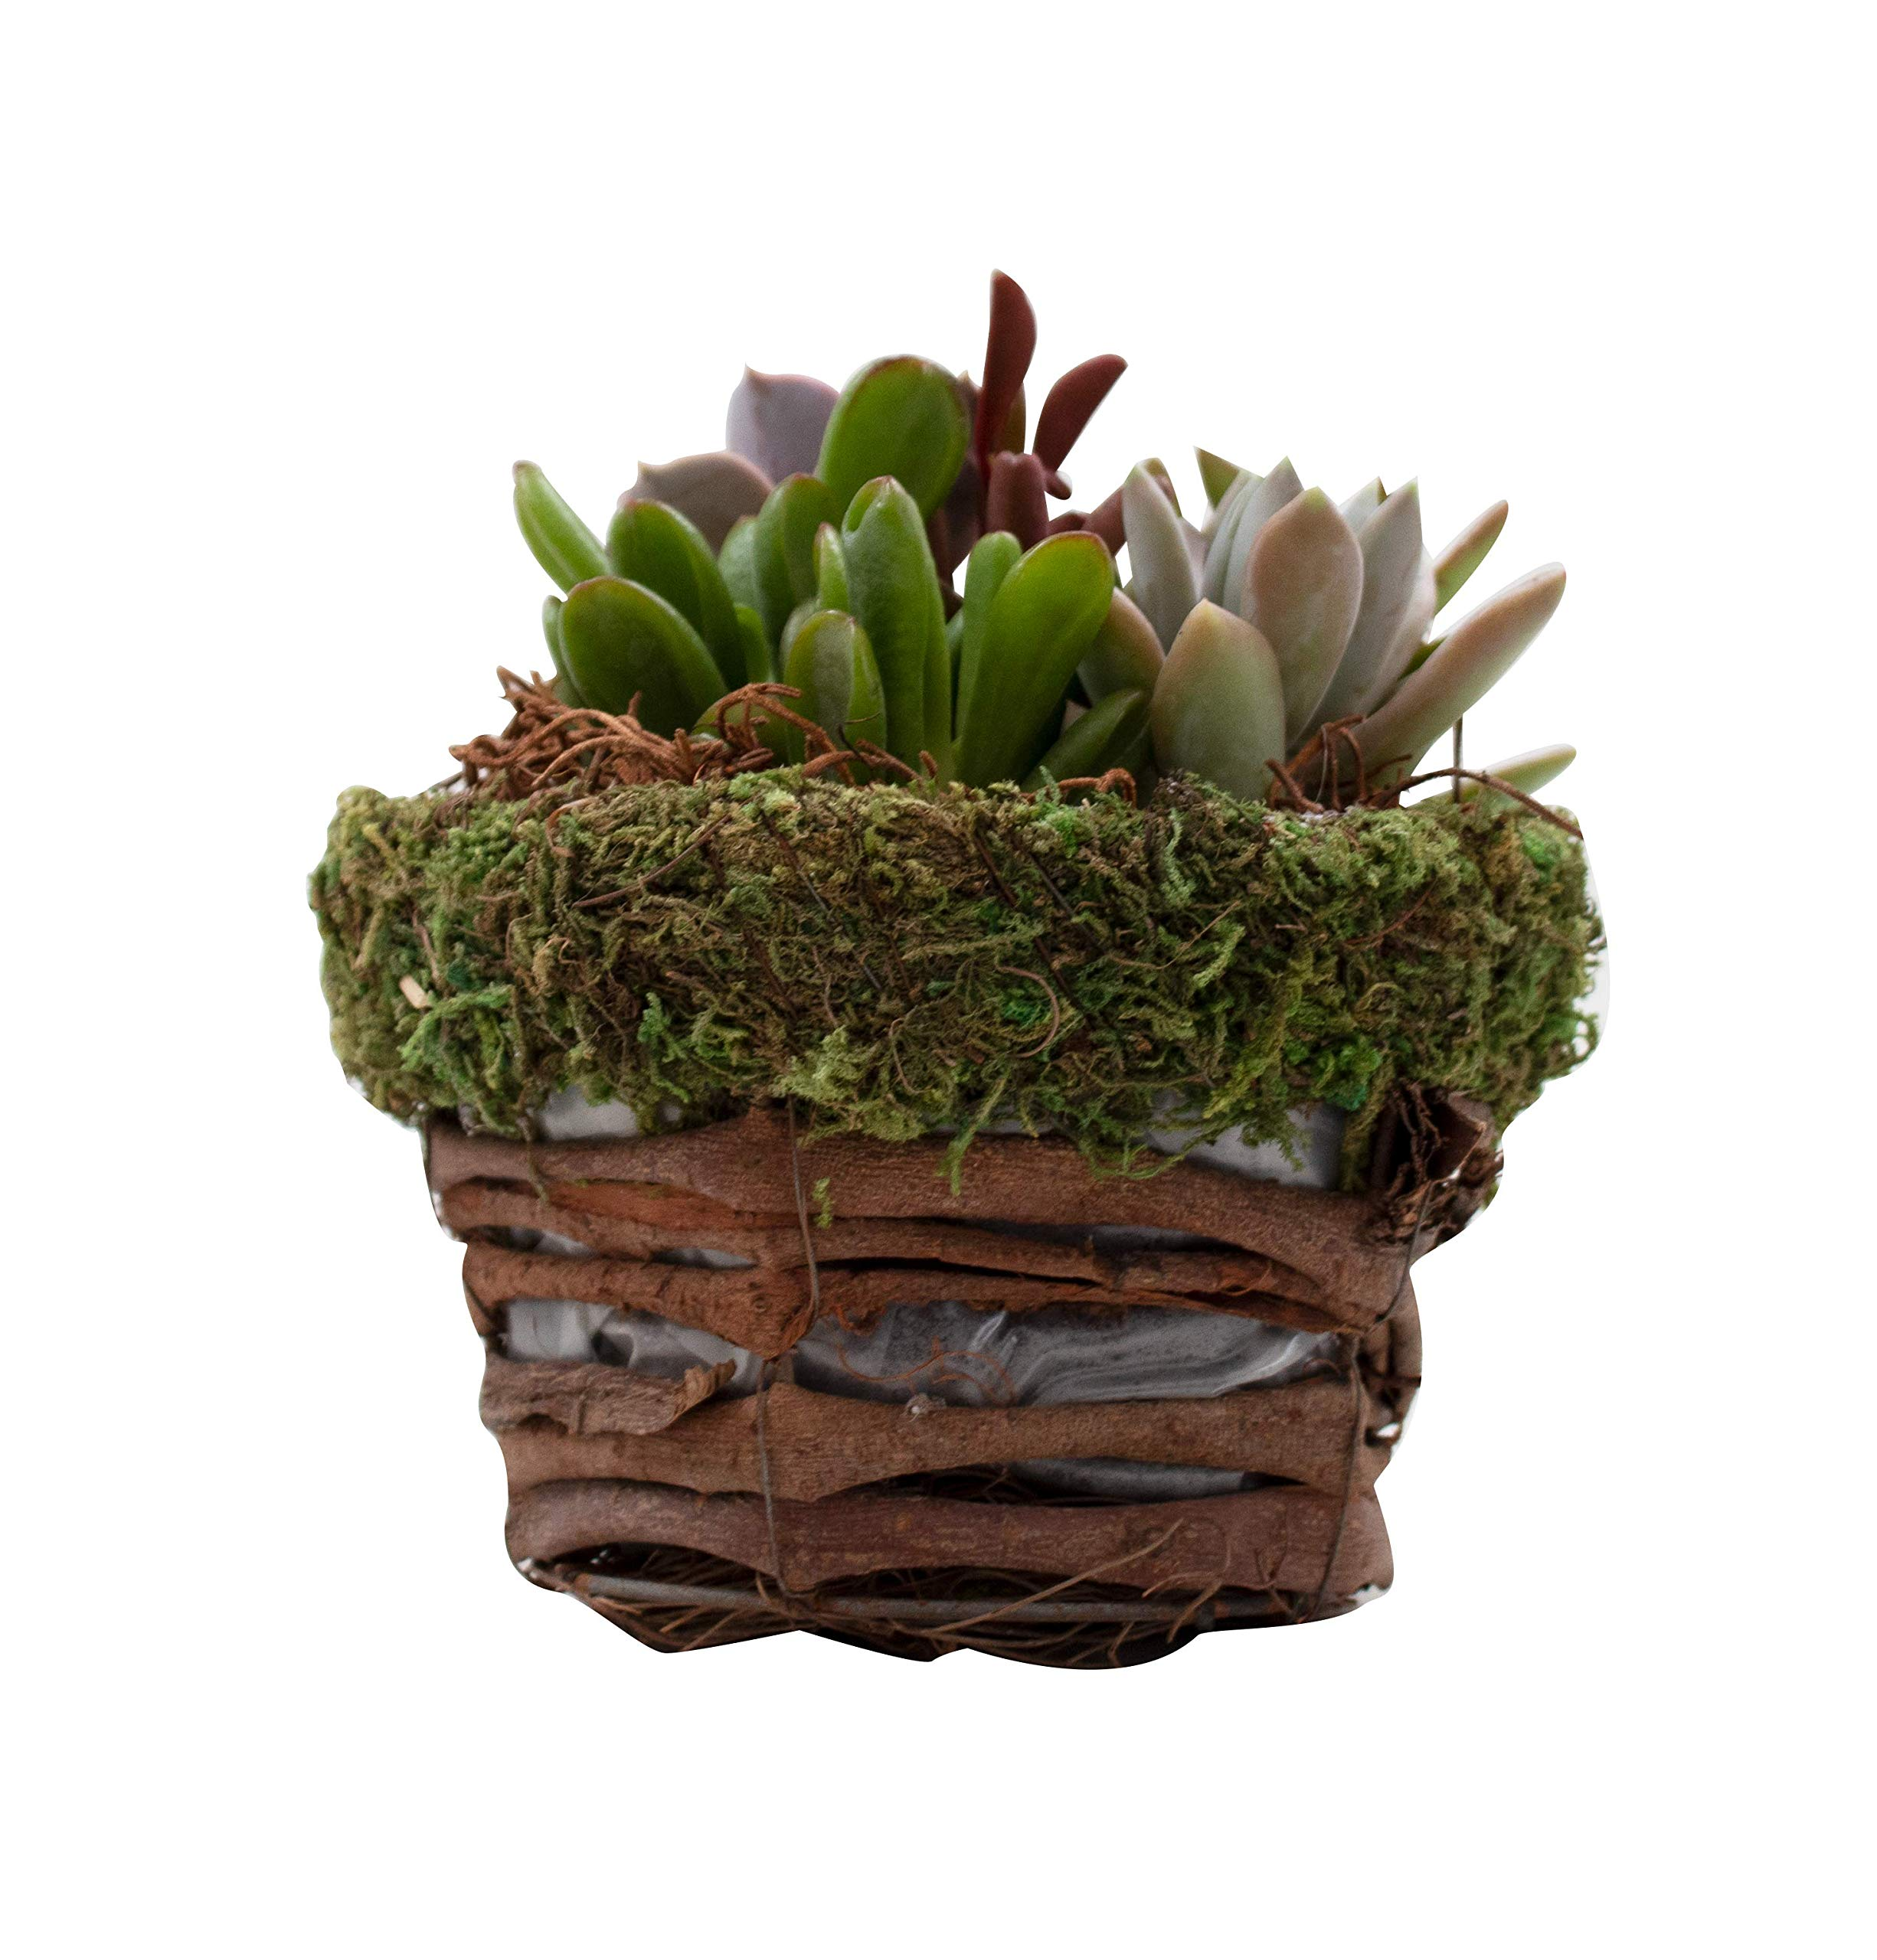 Hallmark Flowers Succulent Garden In 10-Inch Moss and Twig Container by Hallmark Flowers